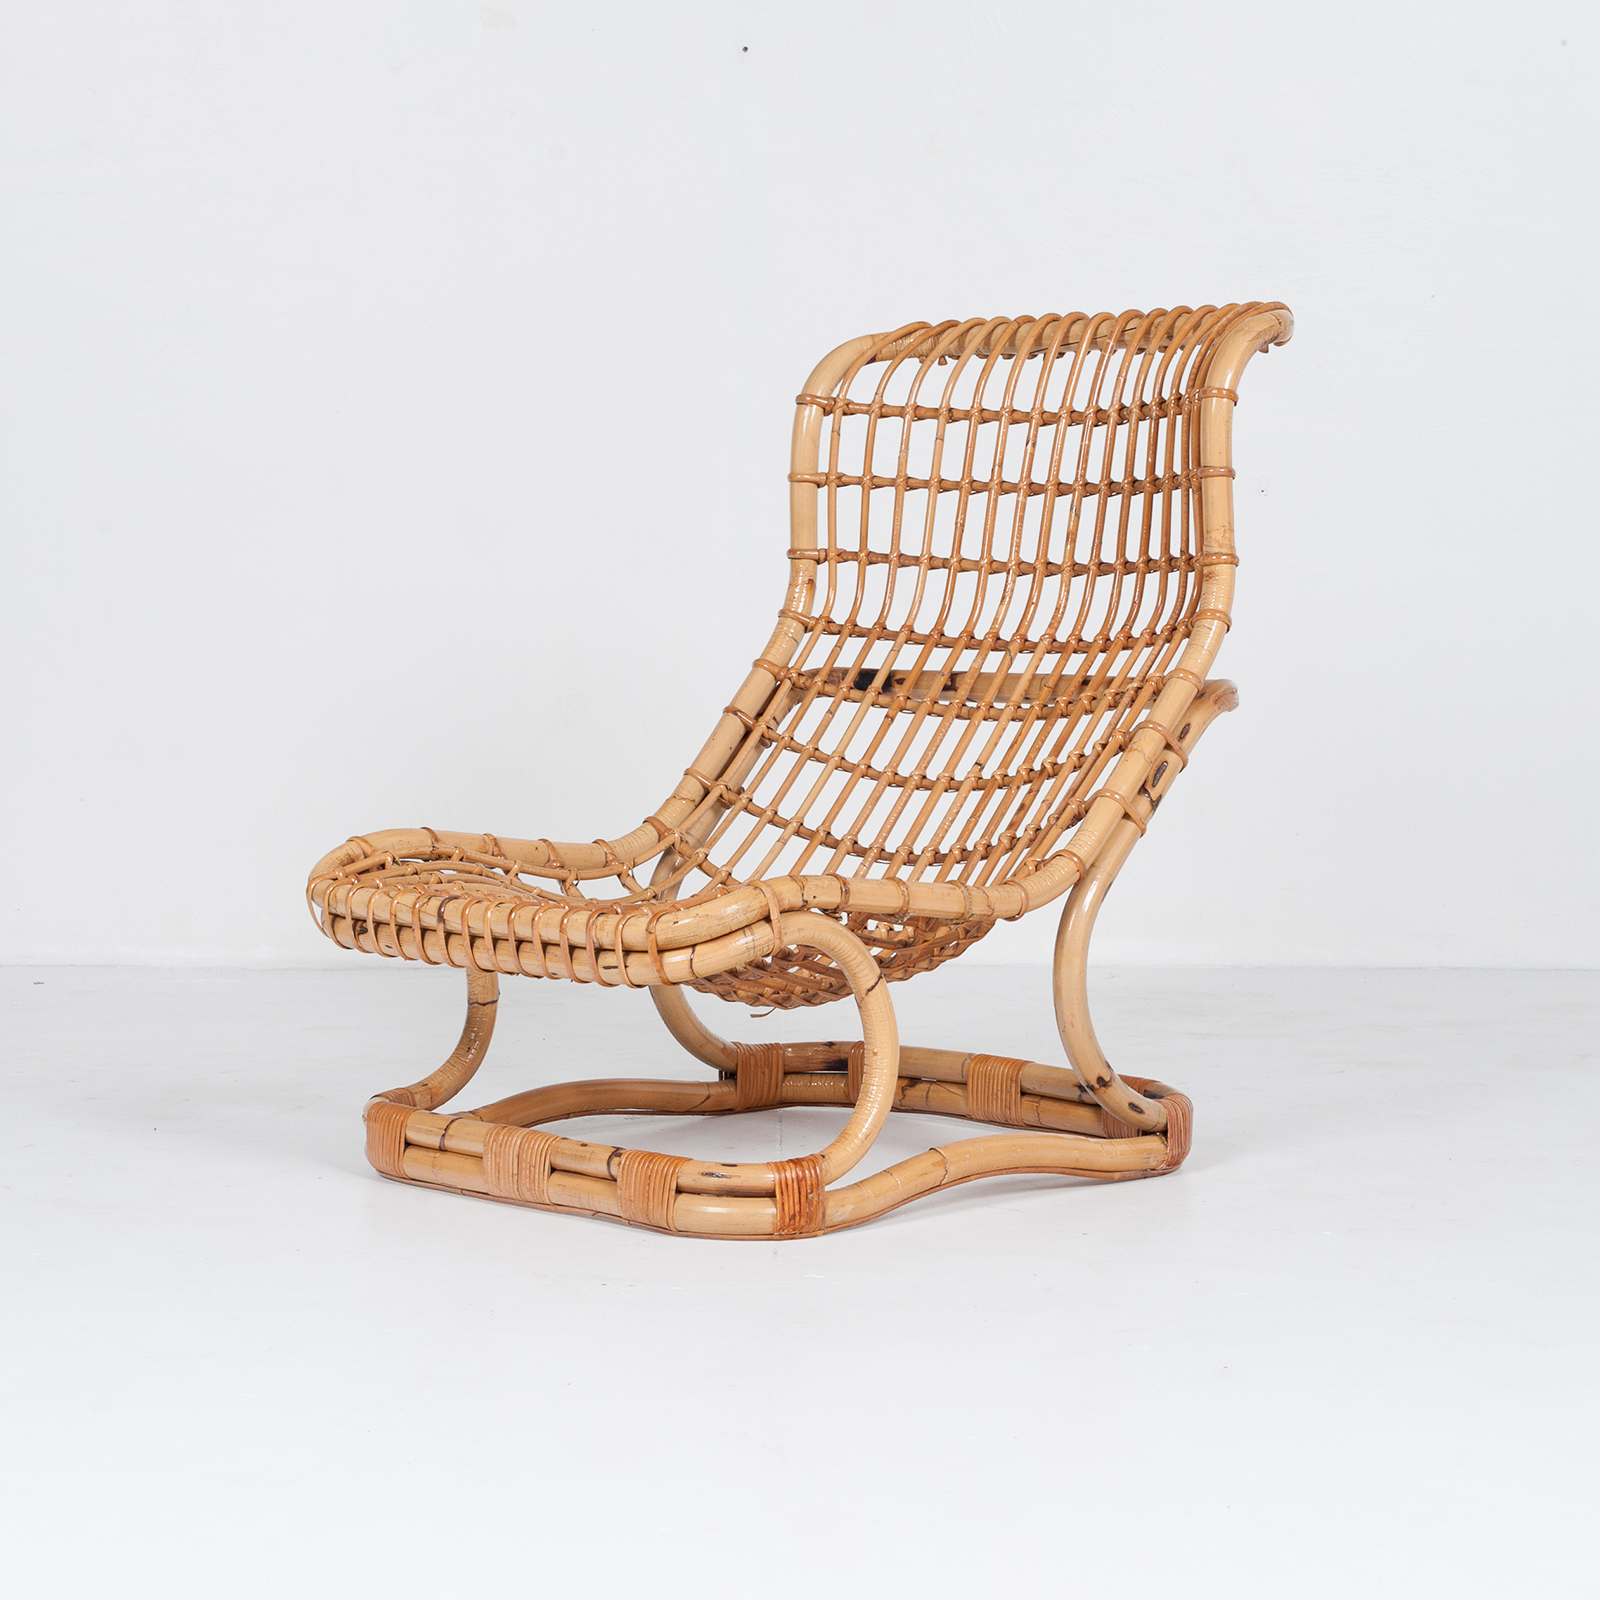 Lounge Chair By Tito Agnoli In Cane, 1960s, Italy53